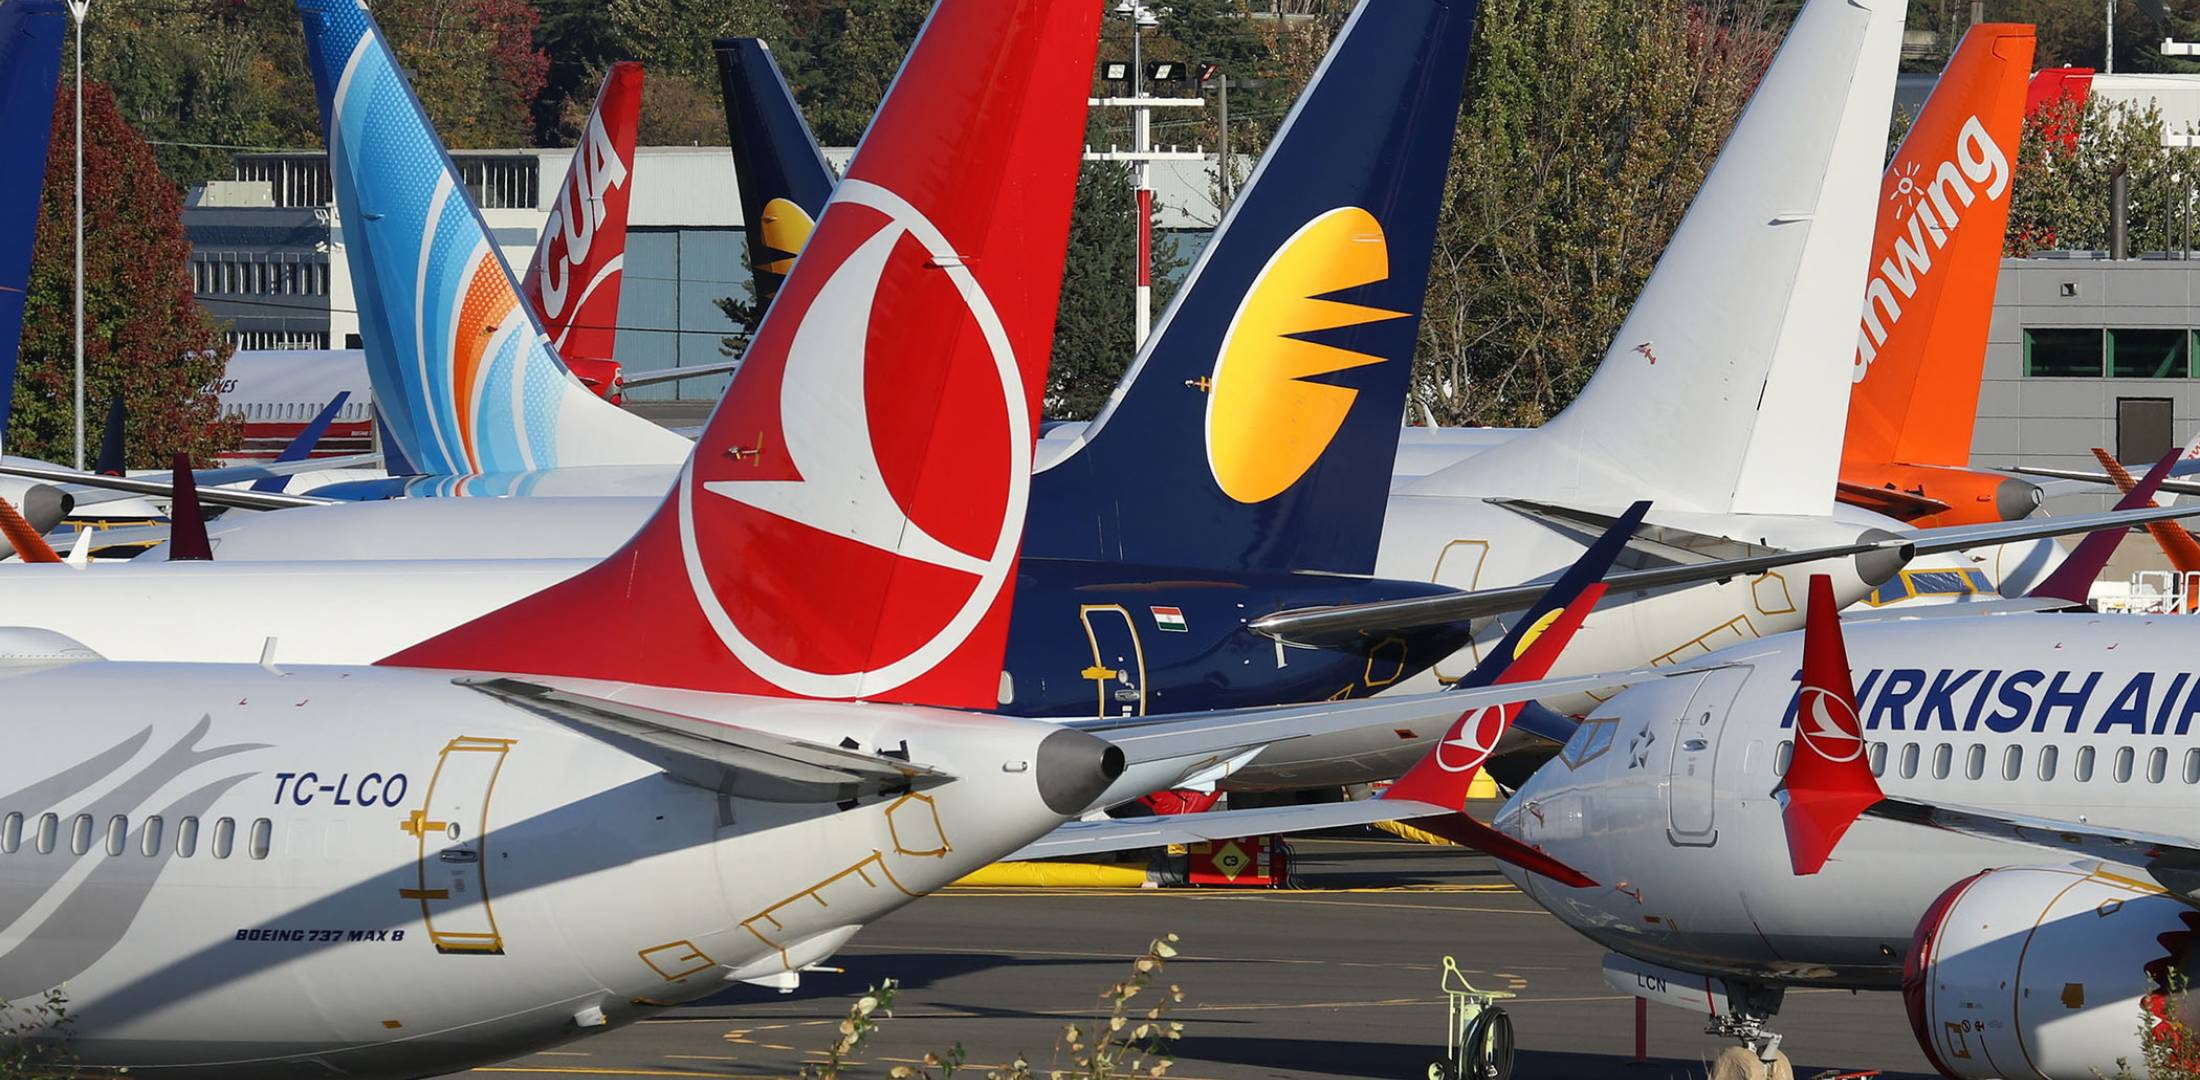 contaminate fuel in airplanes Photo: Barry Ambrose